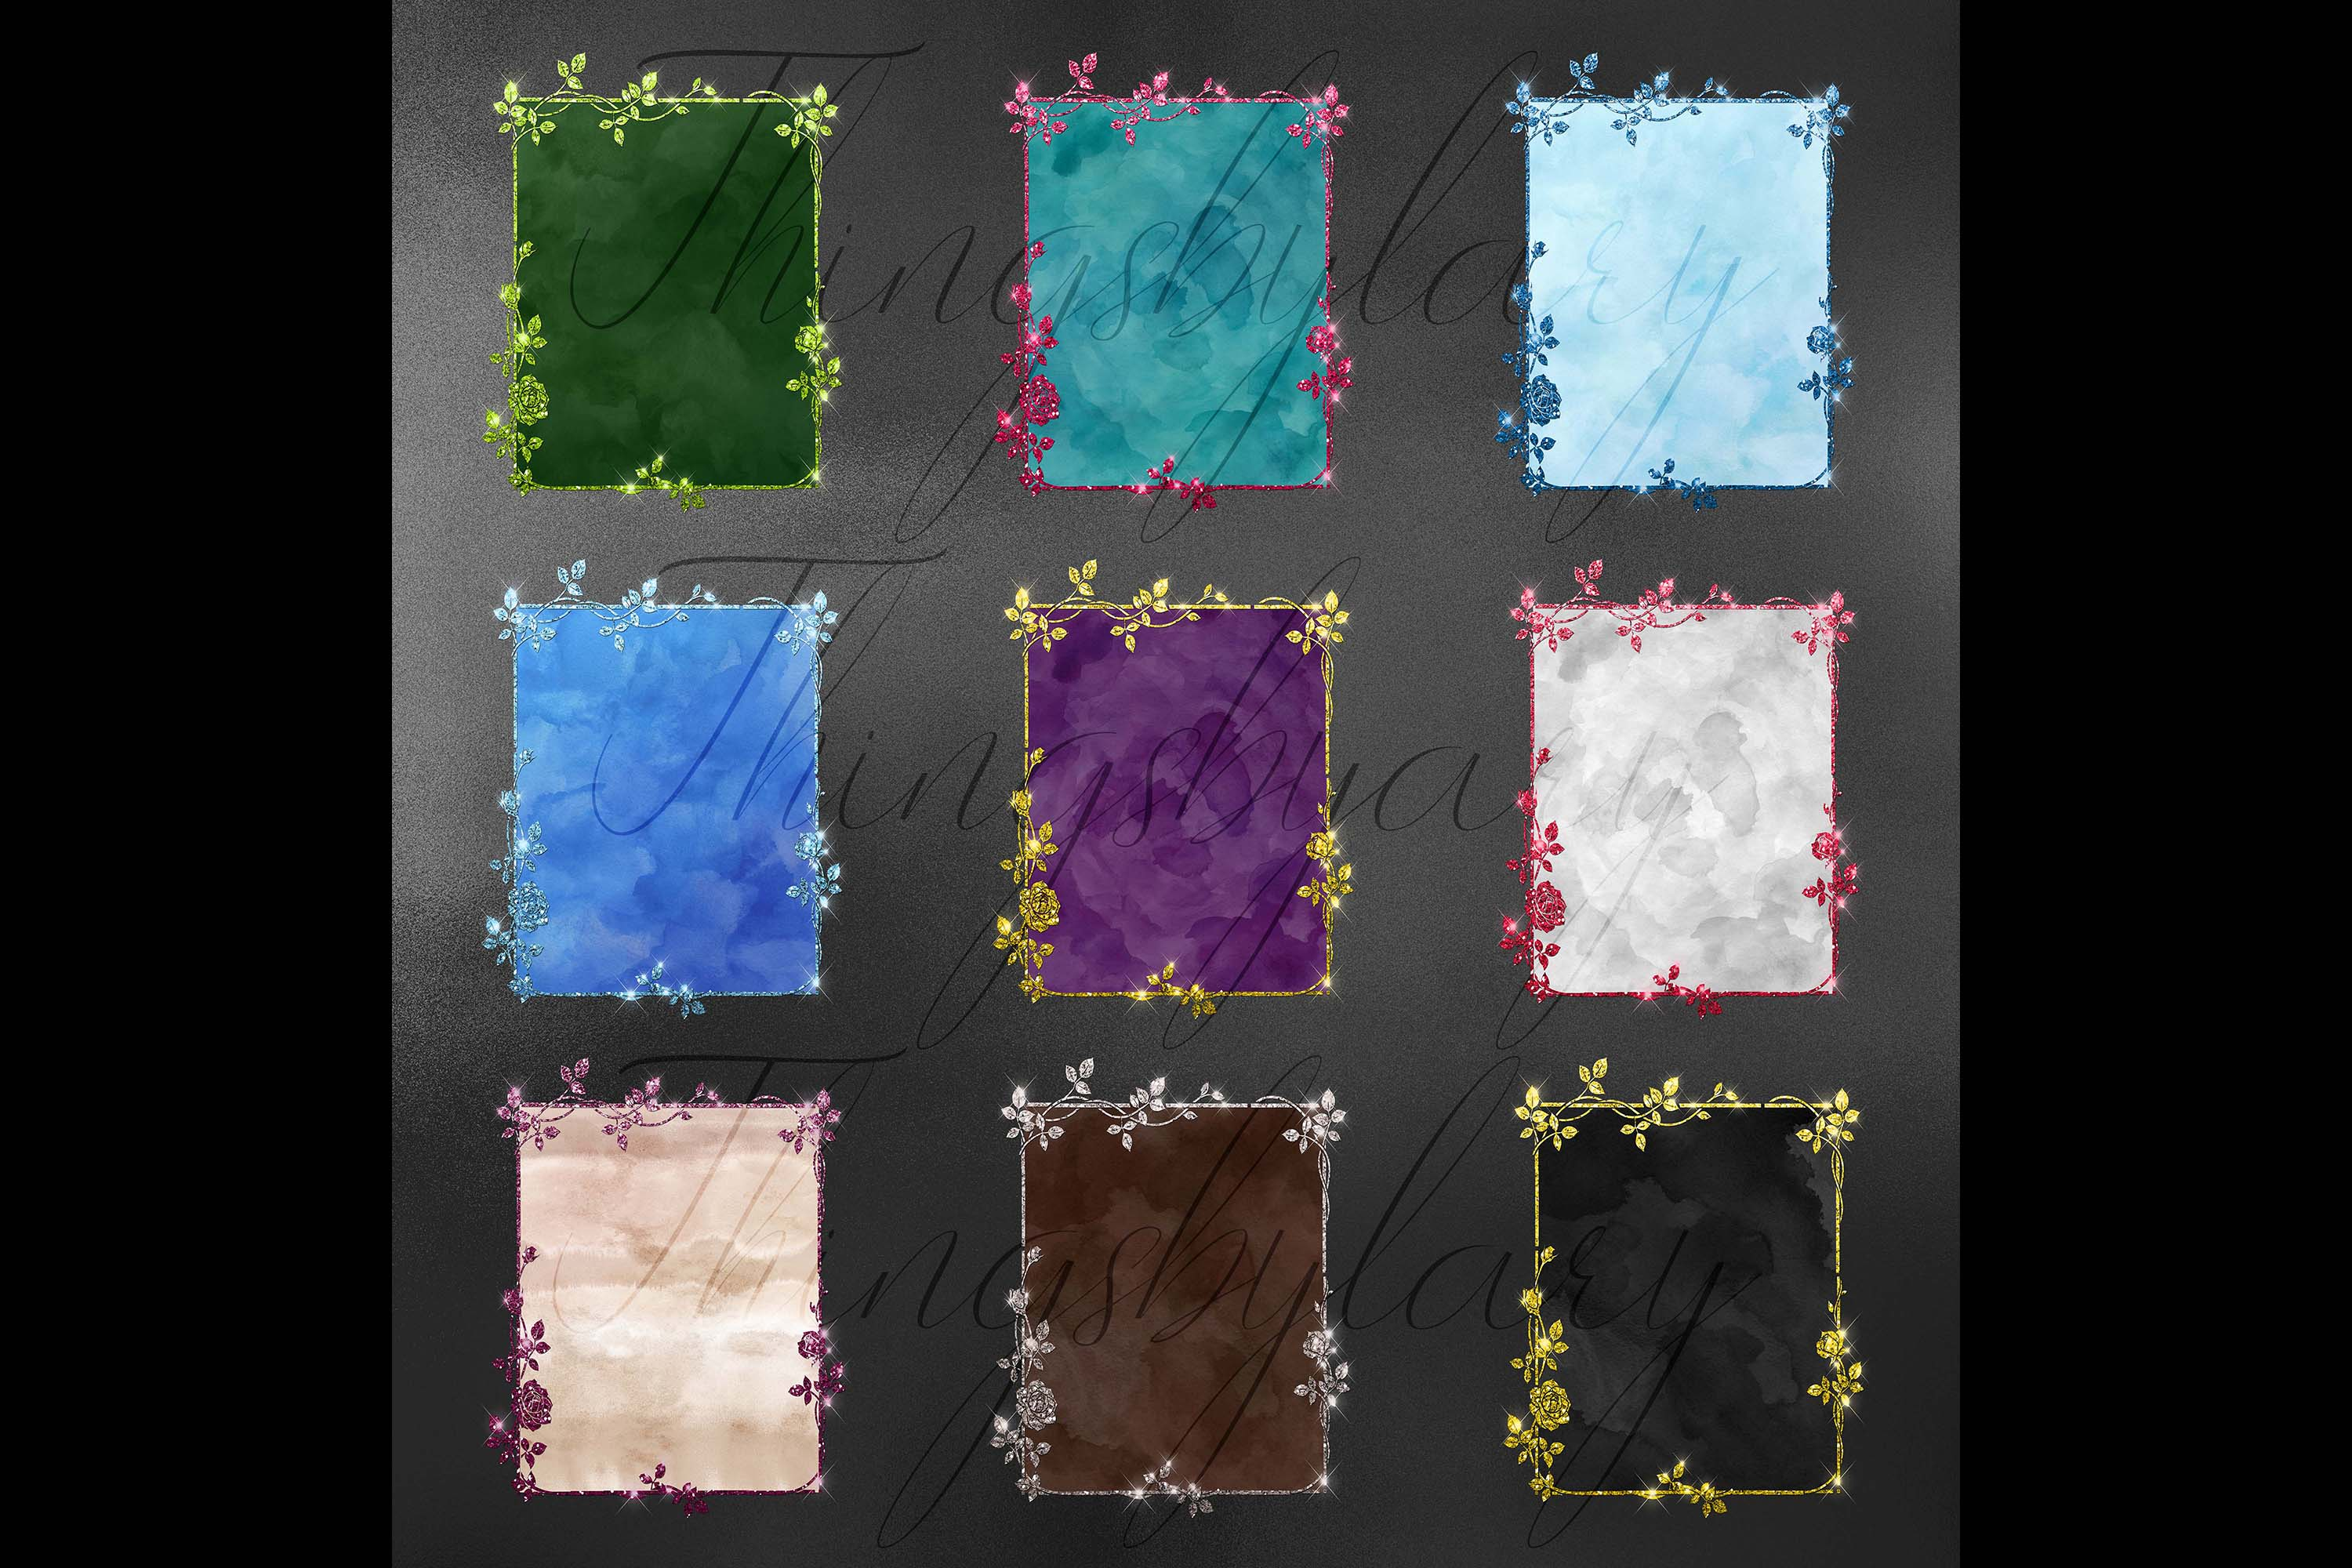 18 Glitter and Watercolor Leaf Branch Floral Frame Card example image 10